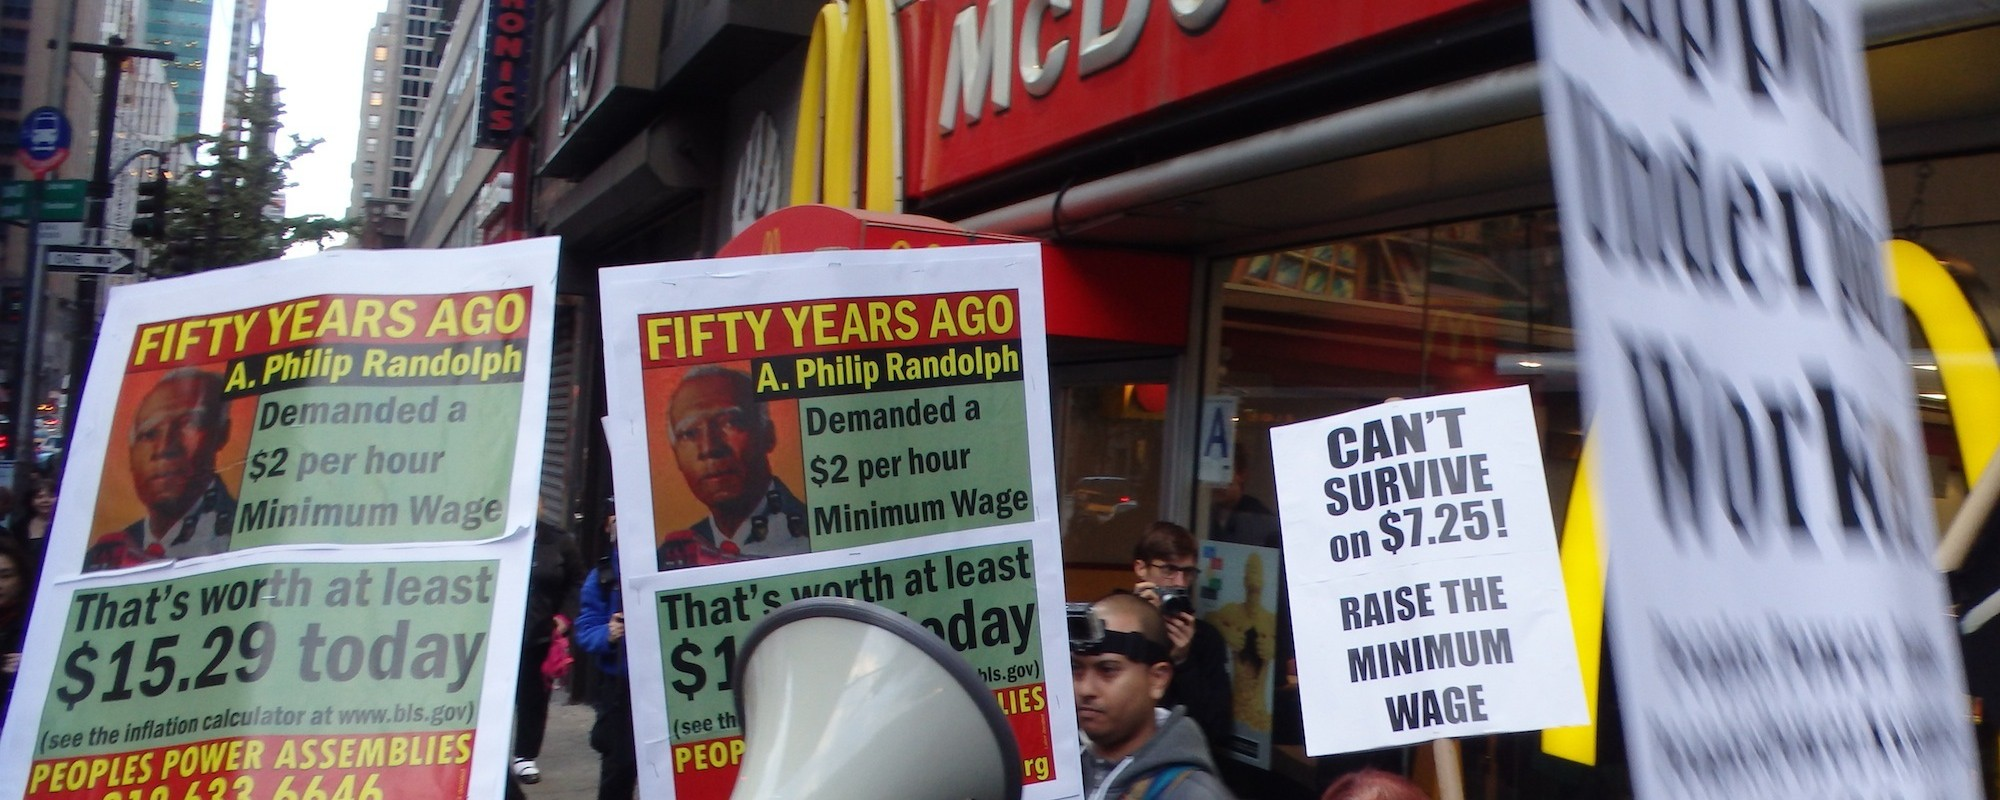 What Will Happen to the Economy If We Raise the Minimum Wage?